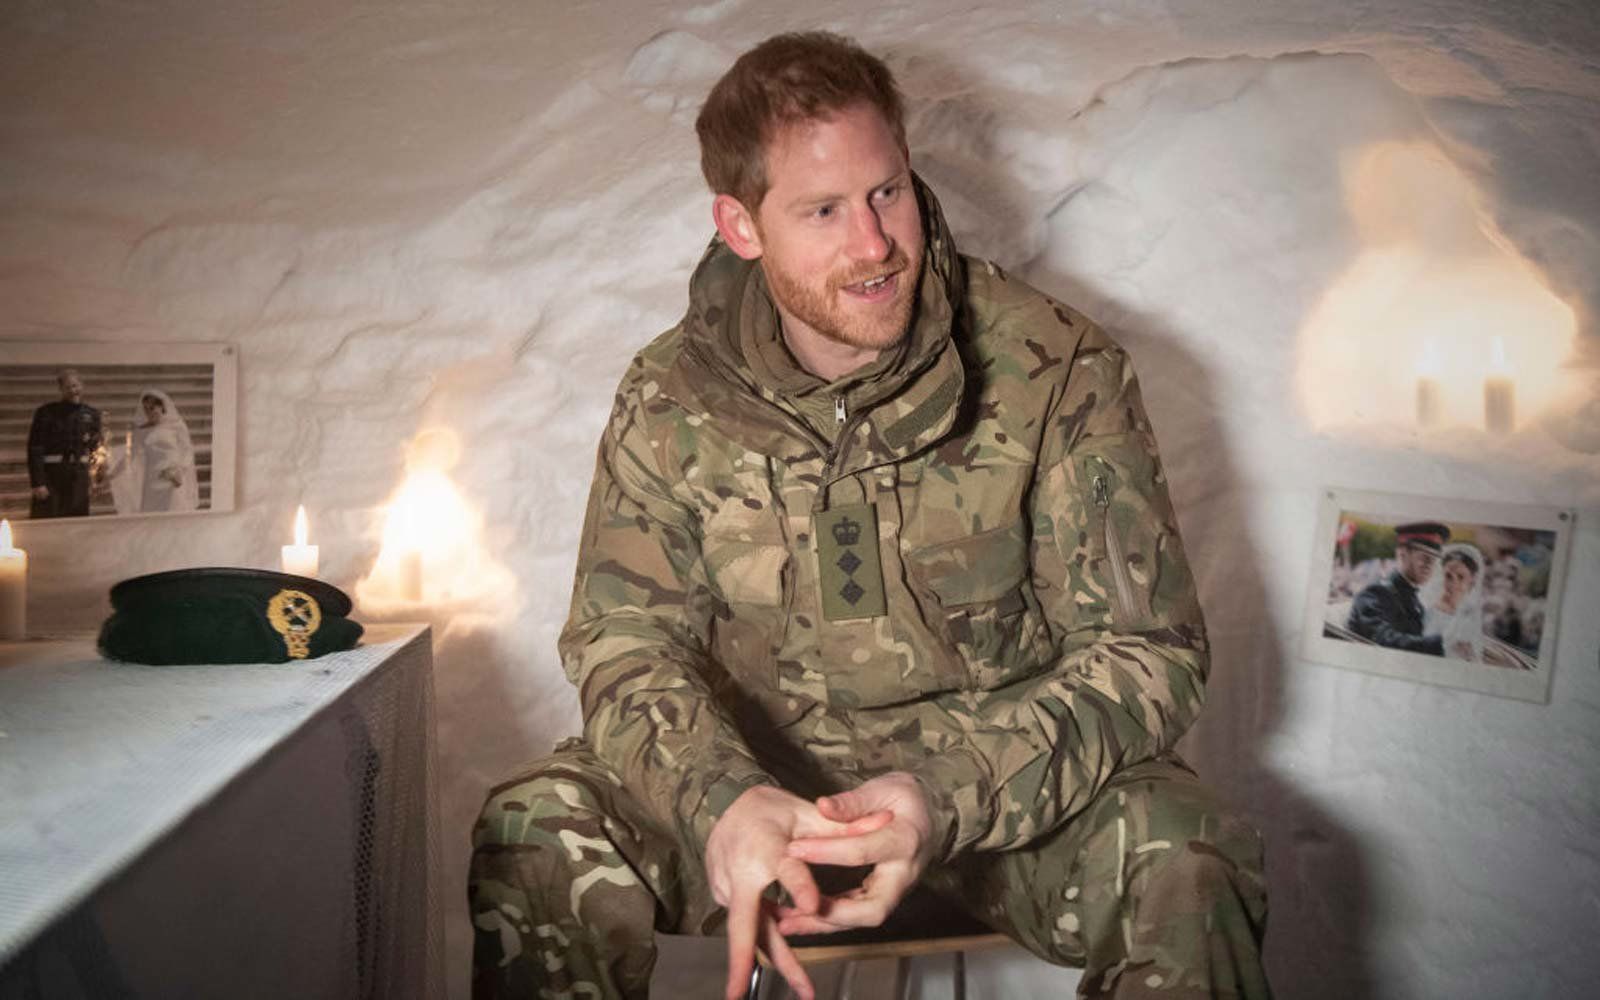 Prince Harry Spent Valentine's Day in an Igloo Decorated With Royal Wedding Photos — and He Found It Hilarious